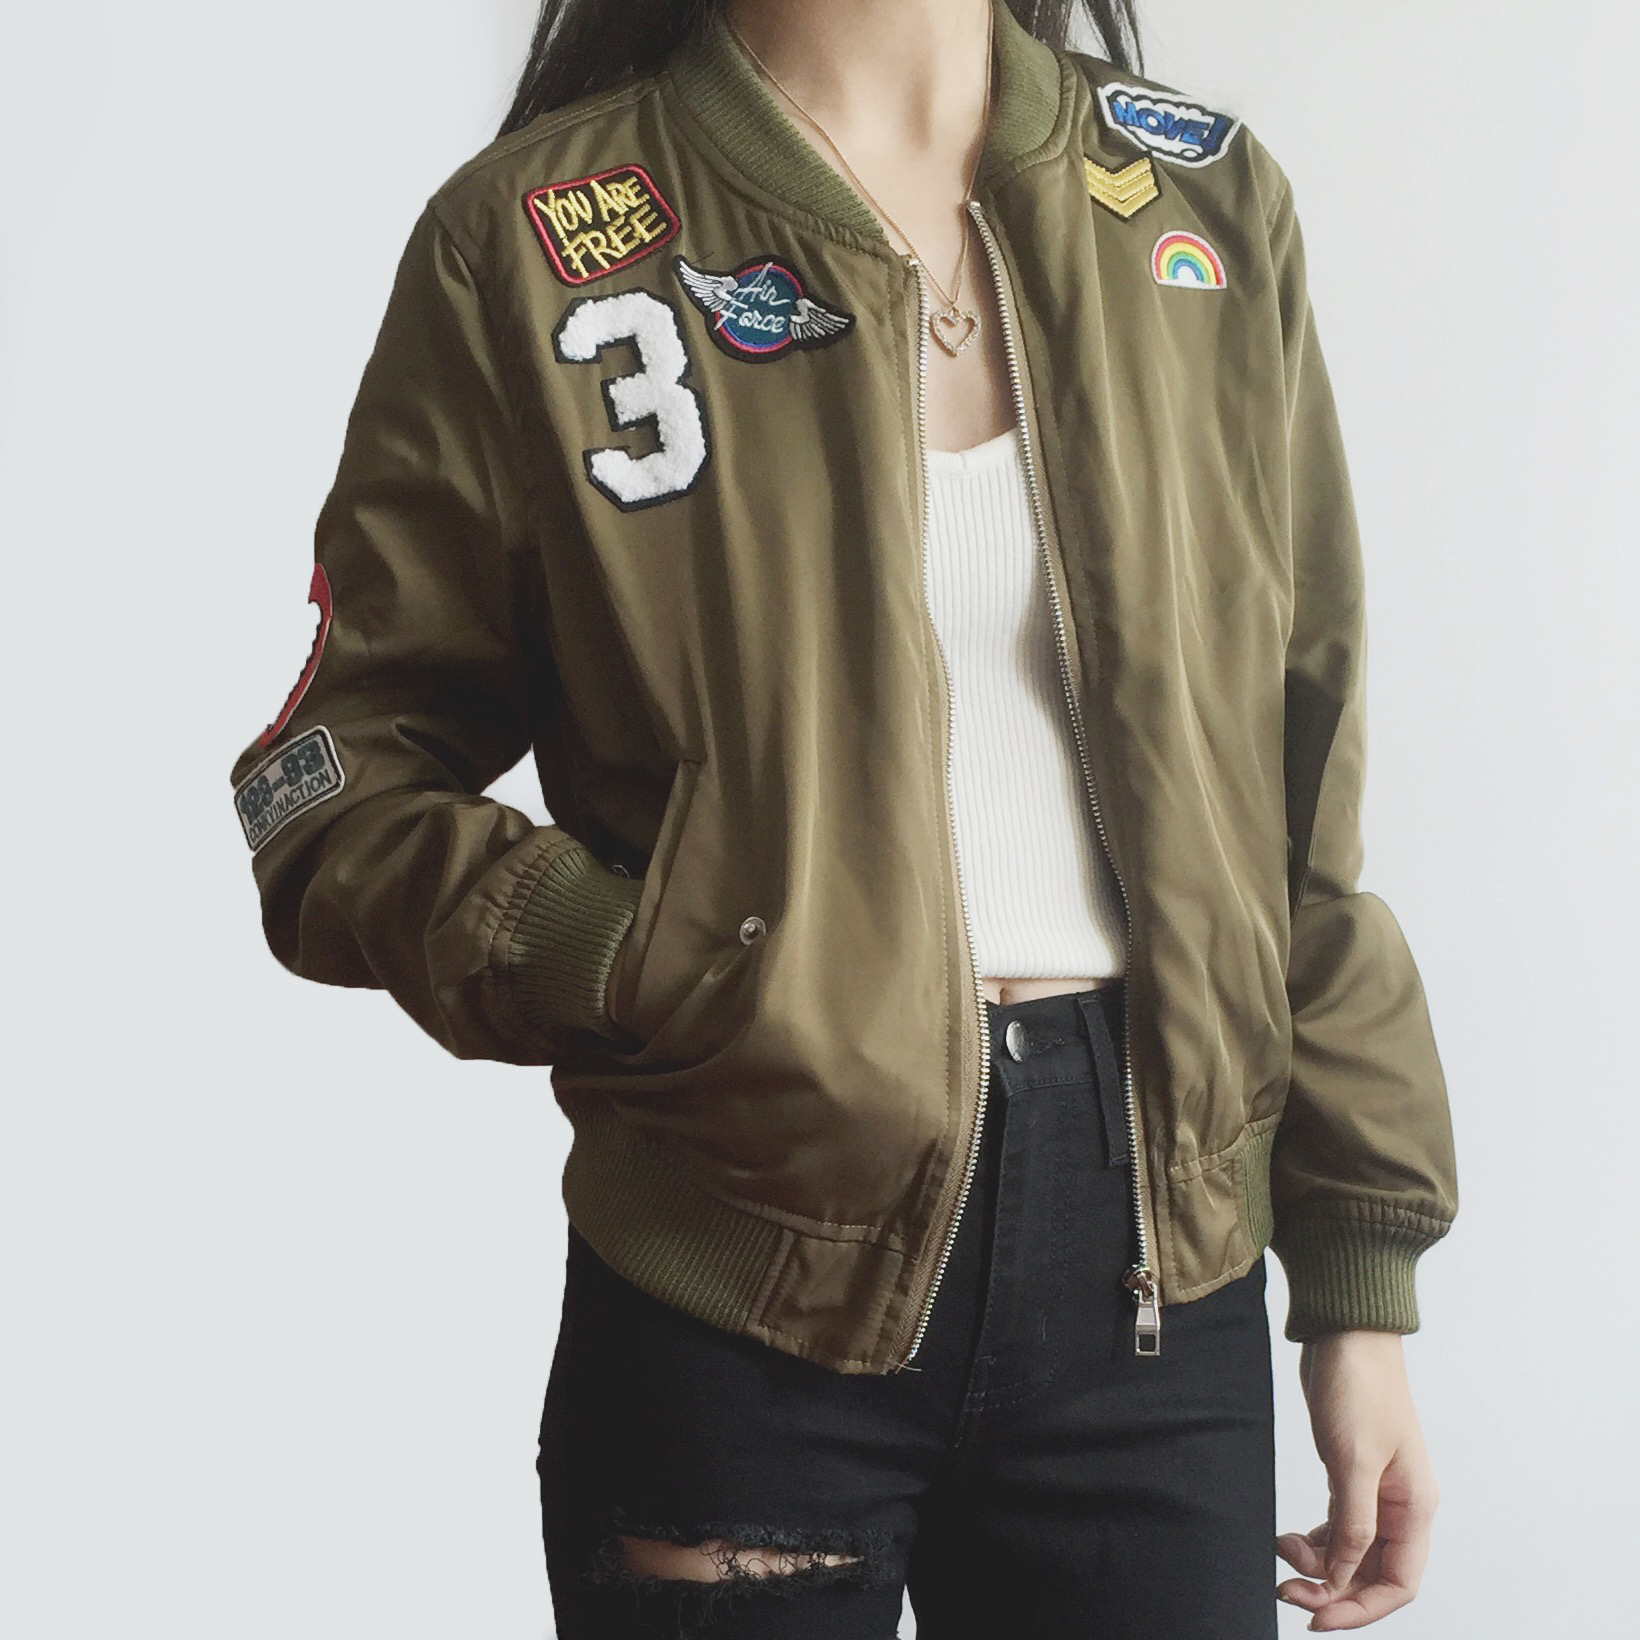 187a0bb40 Air Force Patch Bomber Jacket (Olive) from Megoosta Fashion